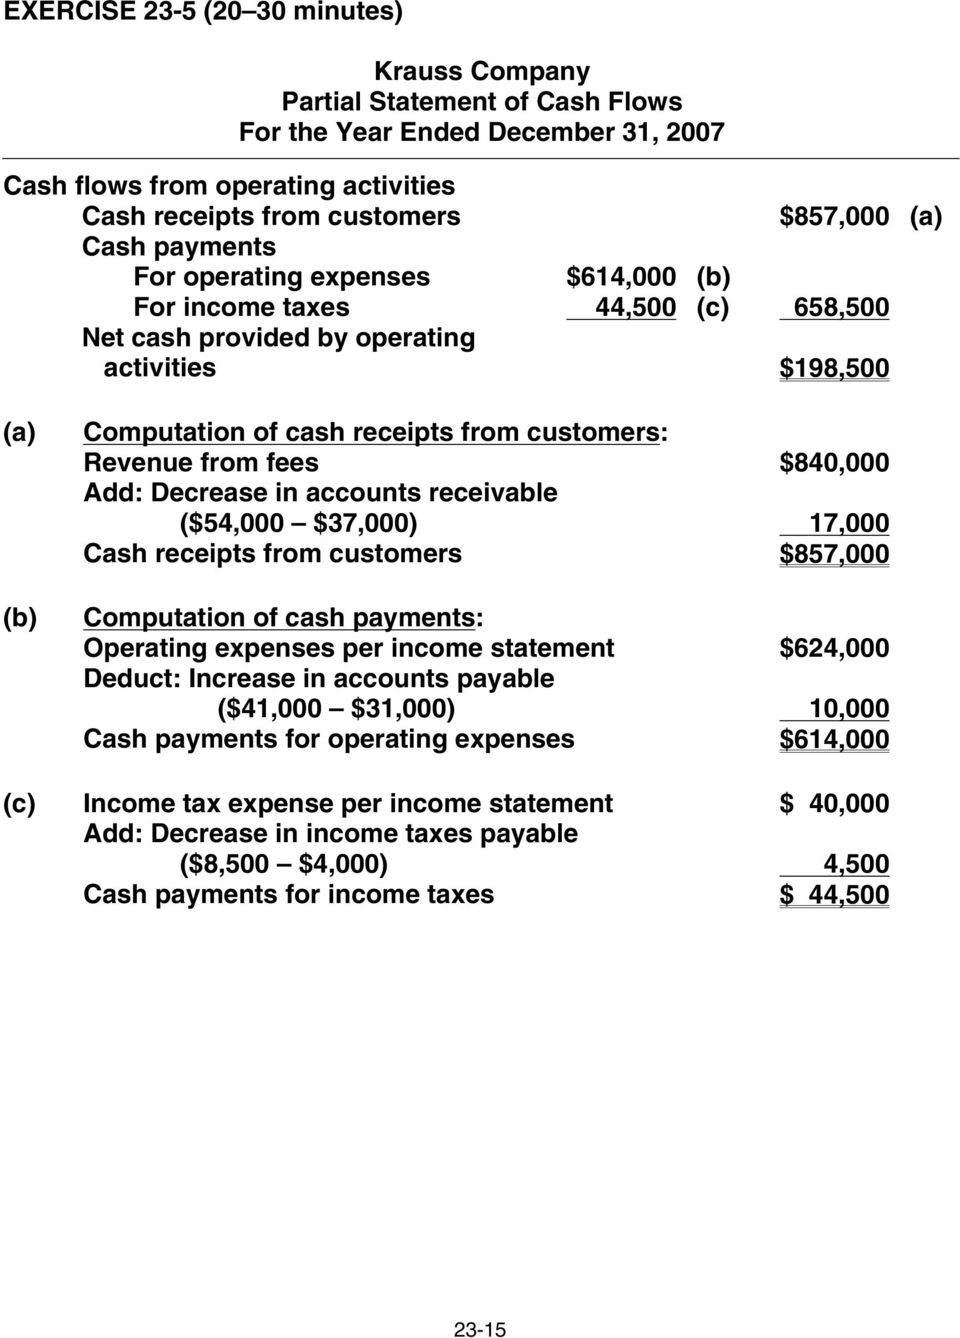 fees $840,000 Add: Decrease in accounts receivable Add: ($54,000 $37,000) 17,000 Cash receipts from customers $857,000 Computation of cash payments: Operating expenses per income statement $624,000